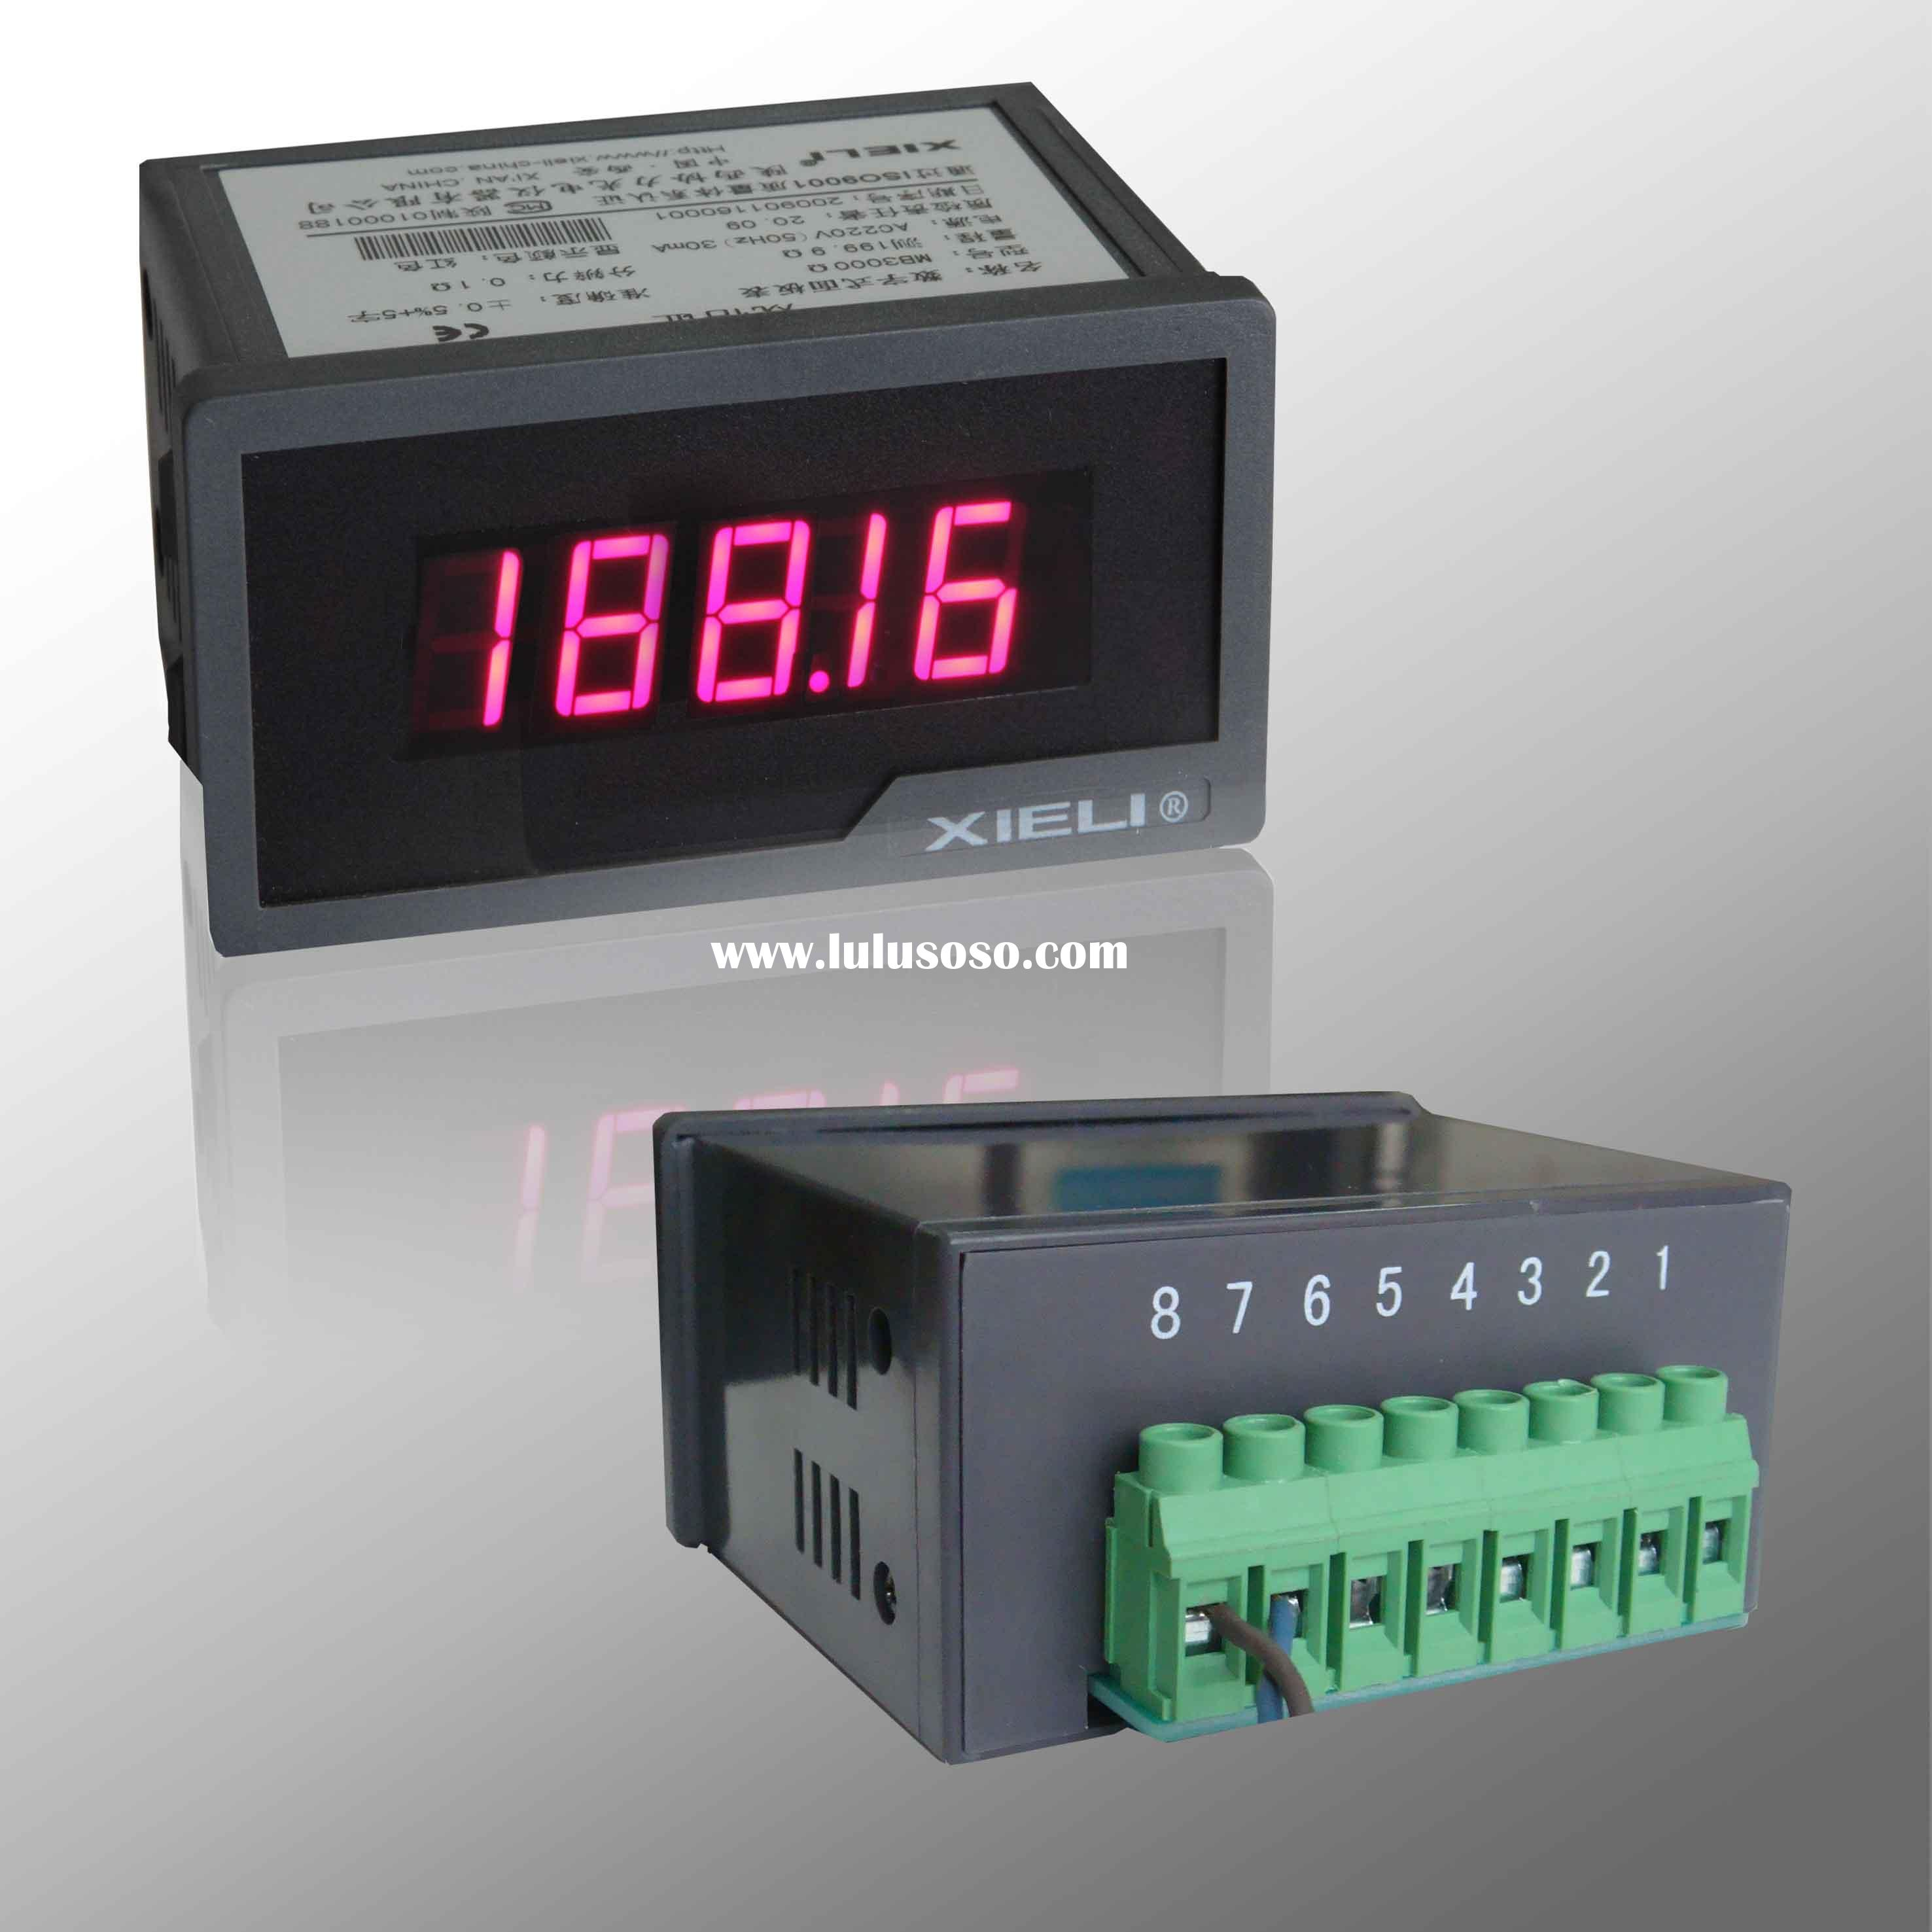 Digital panel meter can measuring AC/DC voltage or current (high & low limit setable)